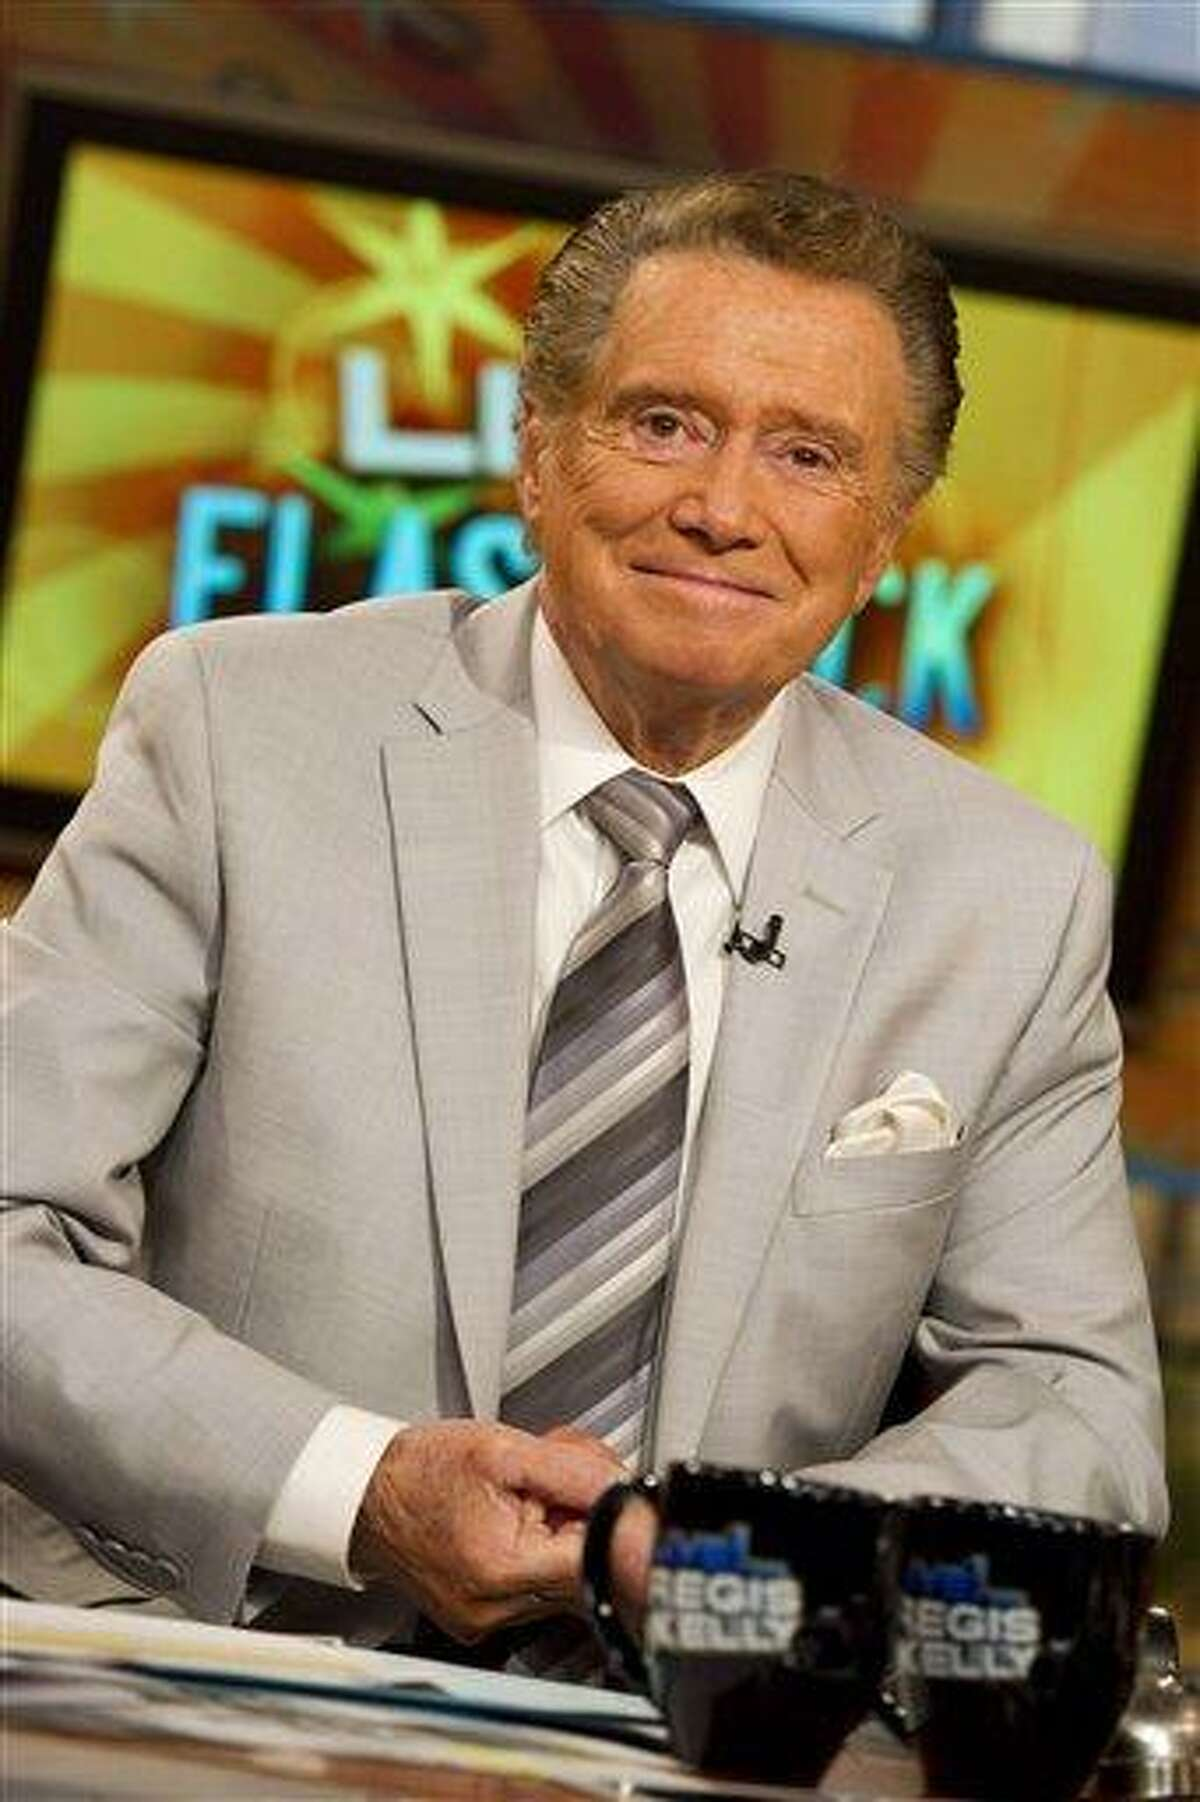 FILE - In this Oct. 28, 2011 photo, long-time talk show host Regis Philbin appears on set during a broadcast of